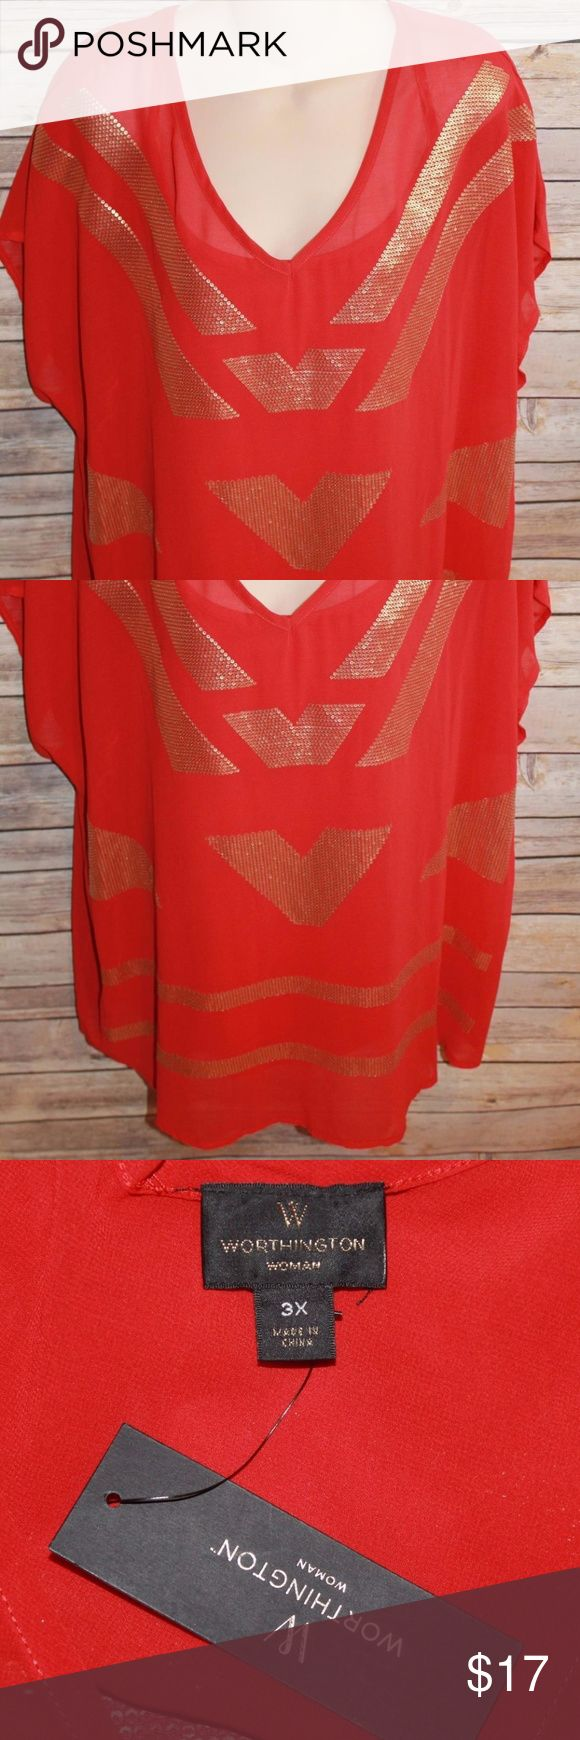 Worthington 2-Piece Red Short Sleeve Top 3X HW481 Worthington  Brand New With Tags MSRP $40  Women's Plus Size 3X Color: Red Gold Sequin Top Short Sleeved  2-Pieced Worthington Tops Blouses